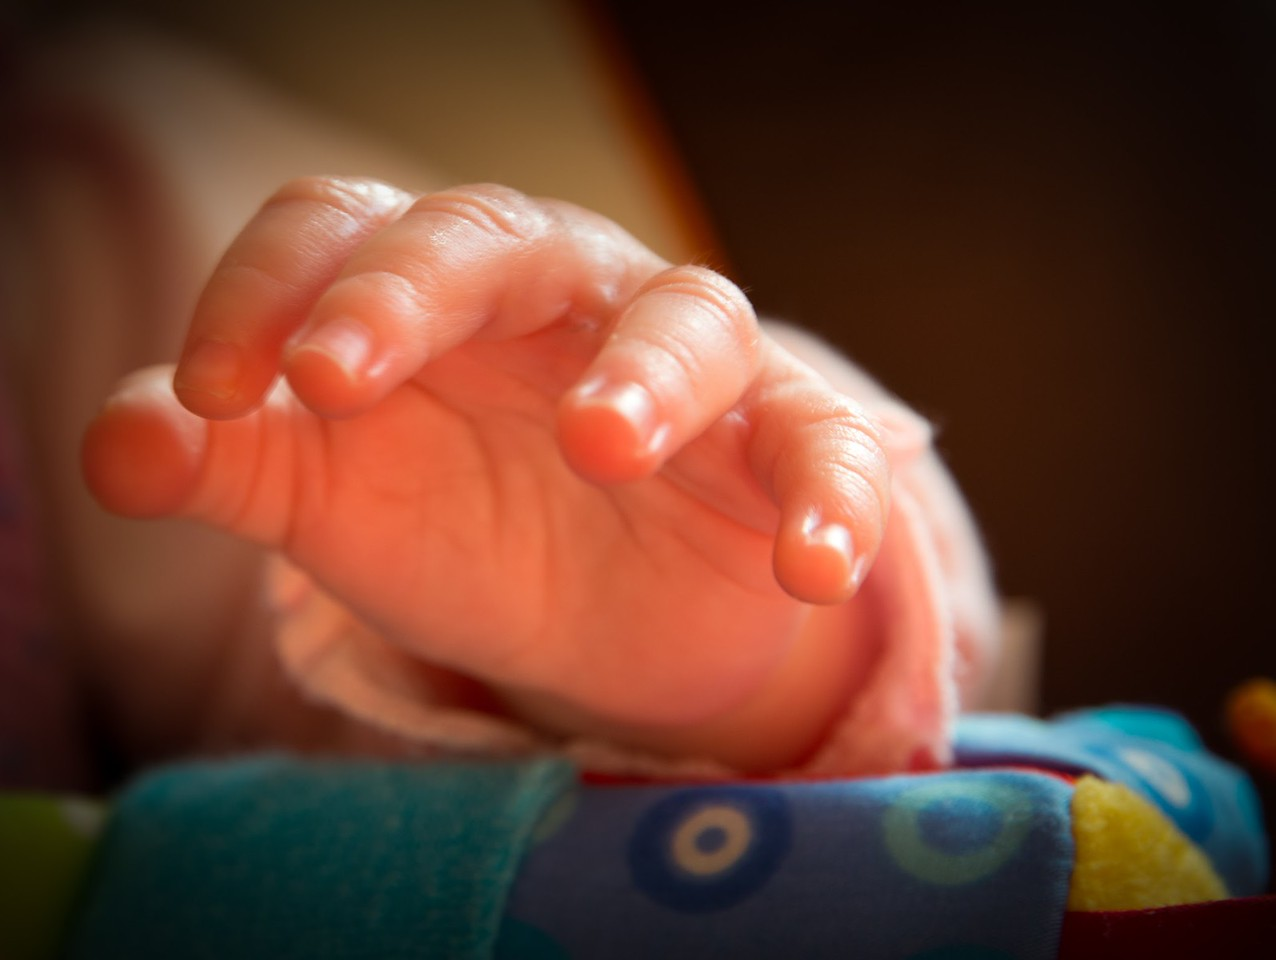 Little Hand of a Baby